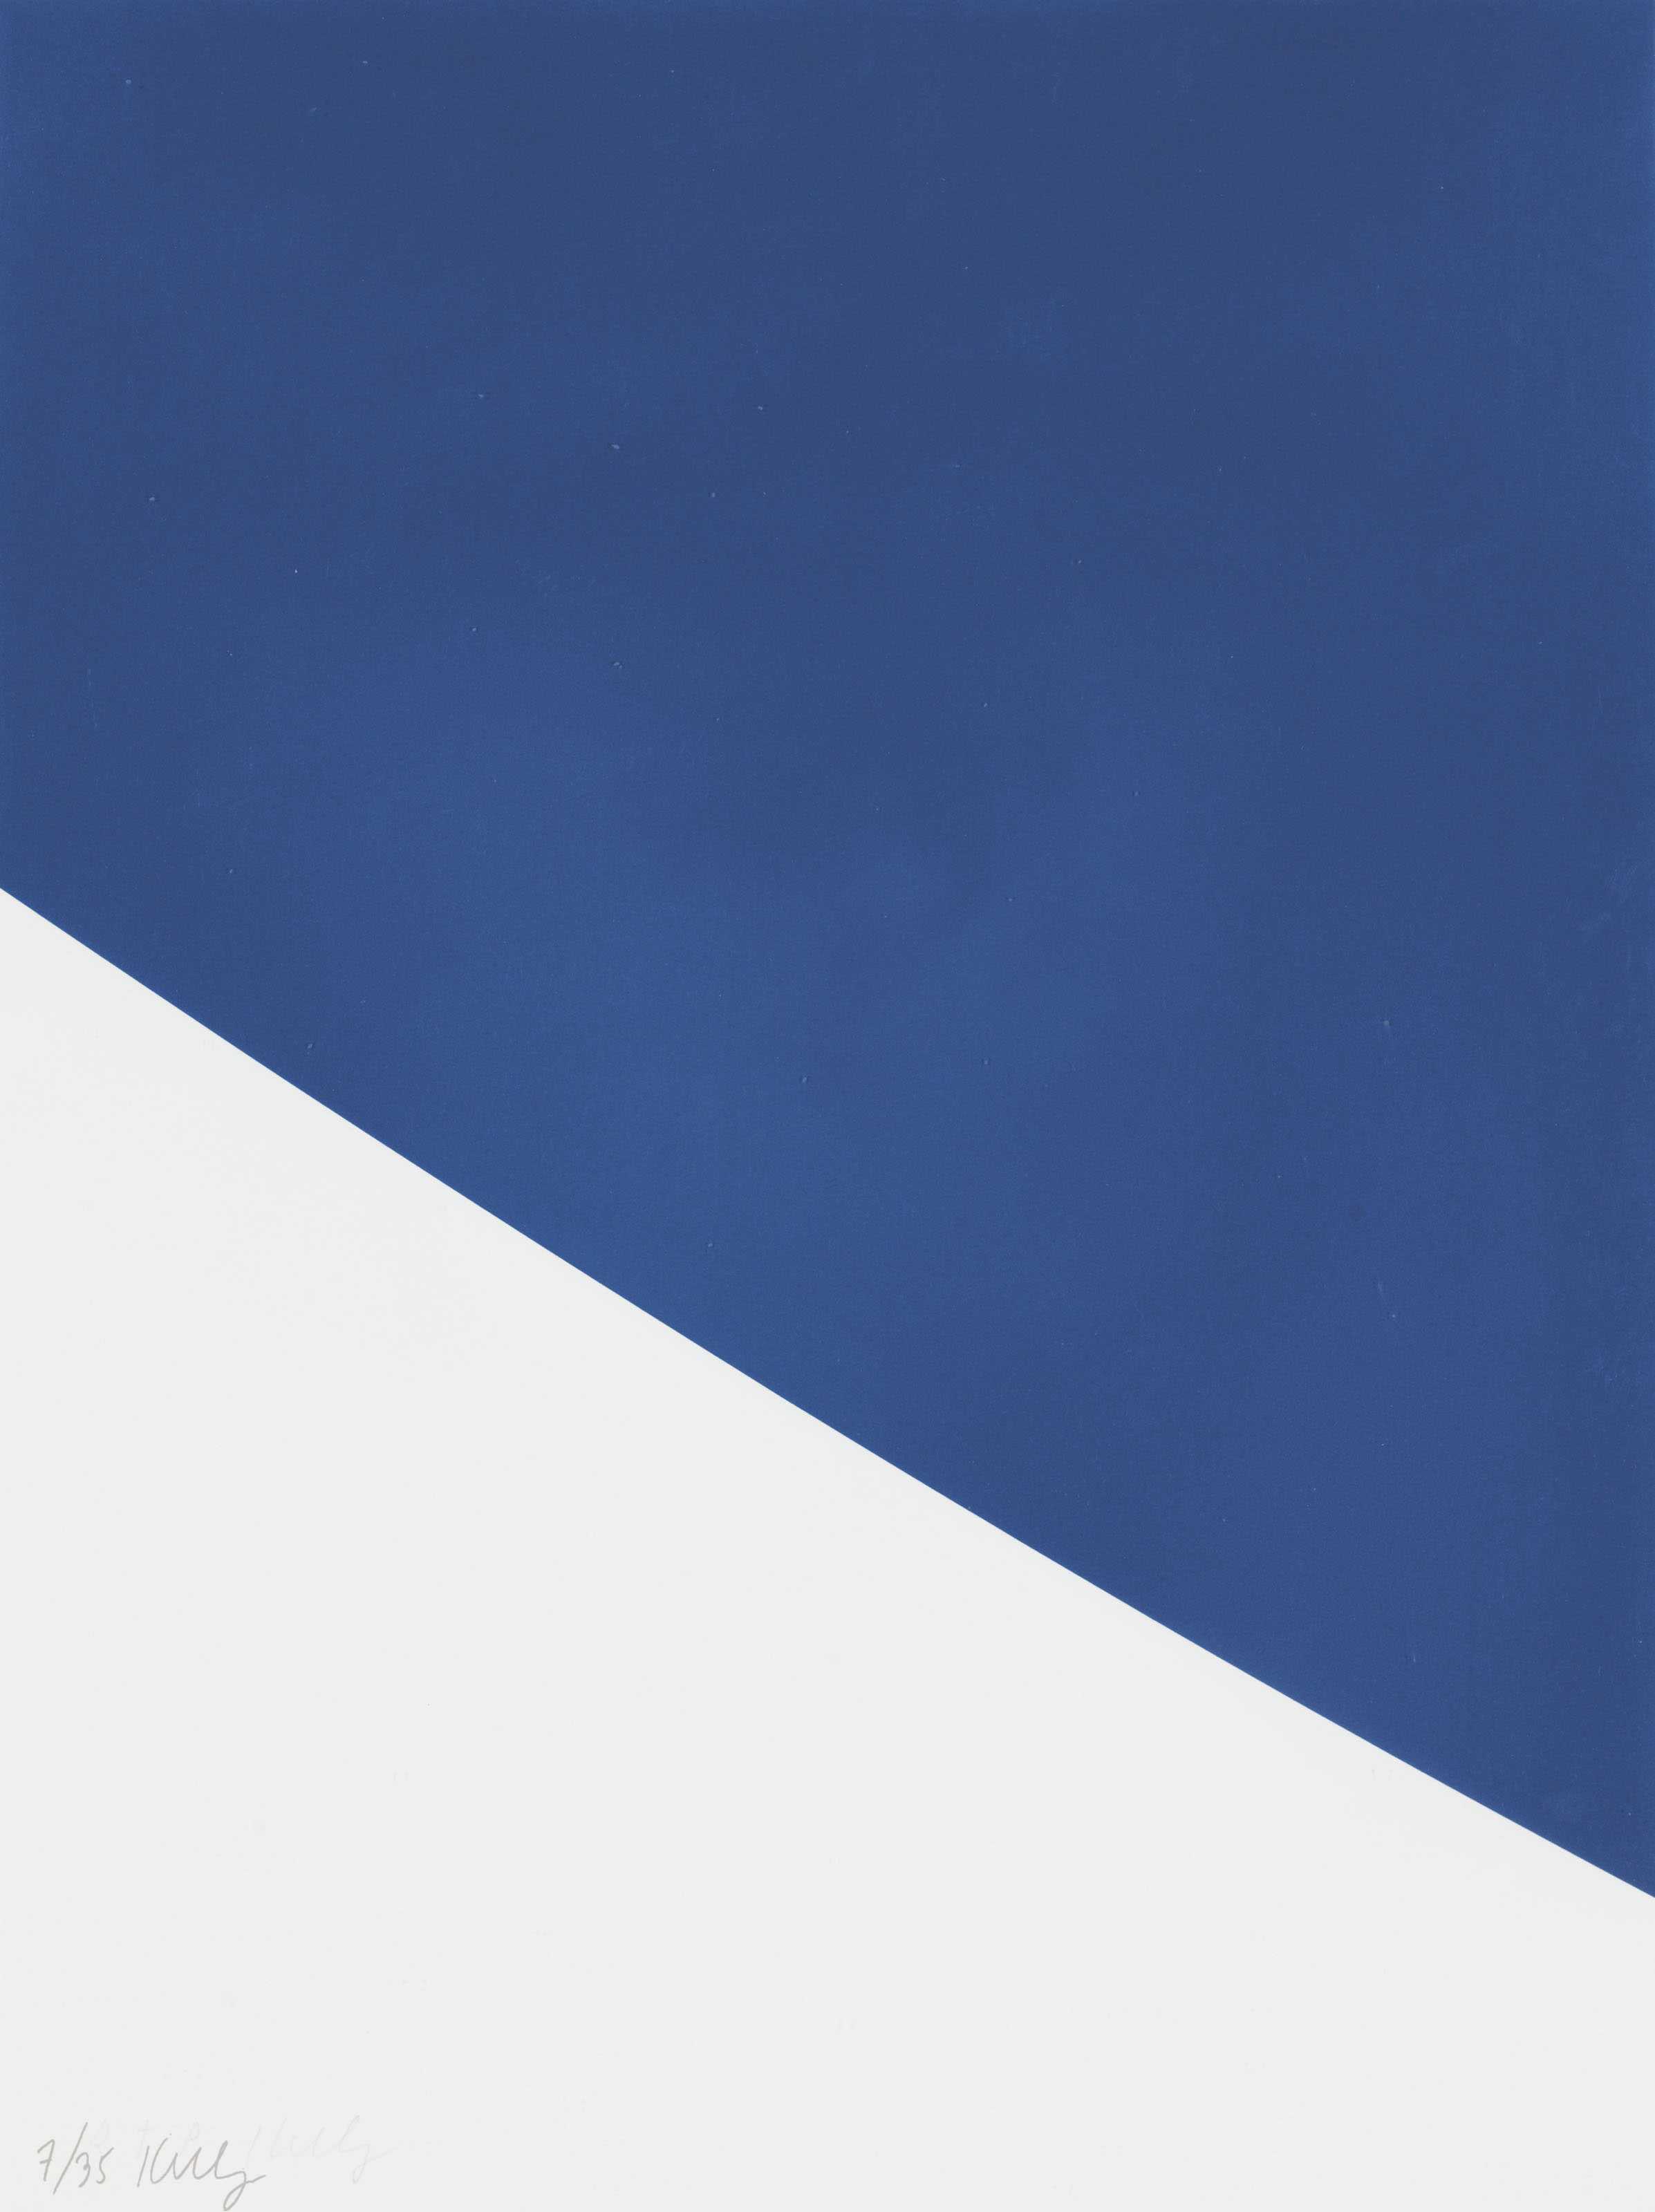 ELLSWORTH KELLY (1923-2015)